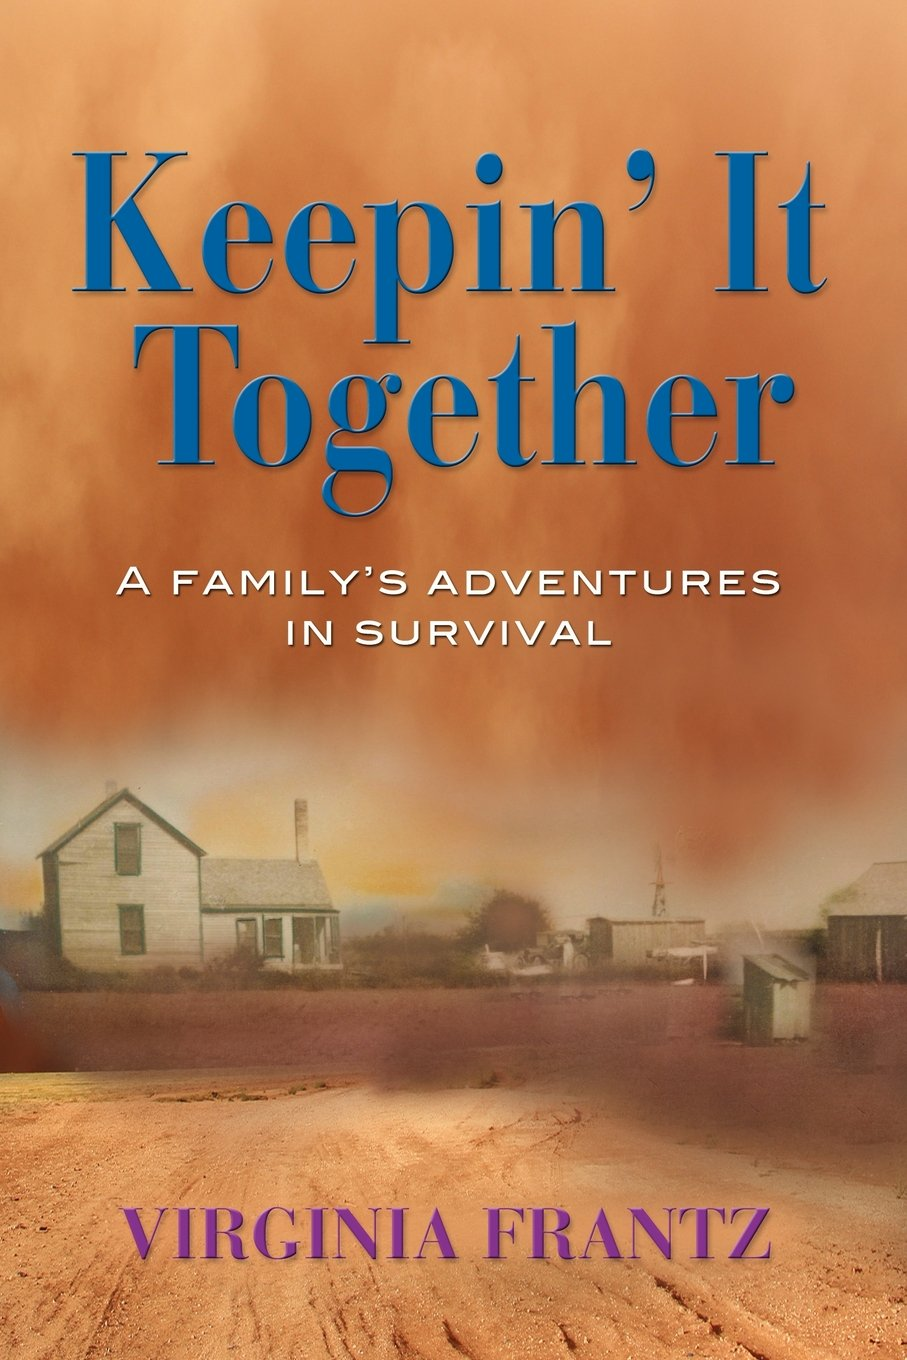 Download Keepin' It Together Text fb2 book